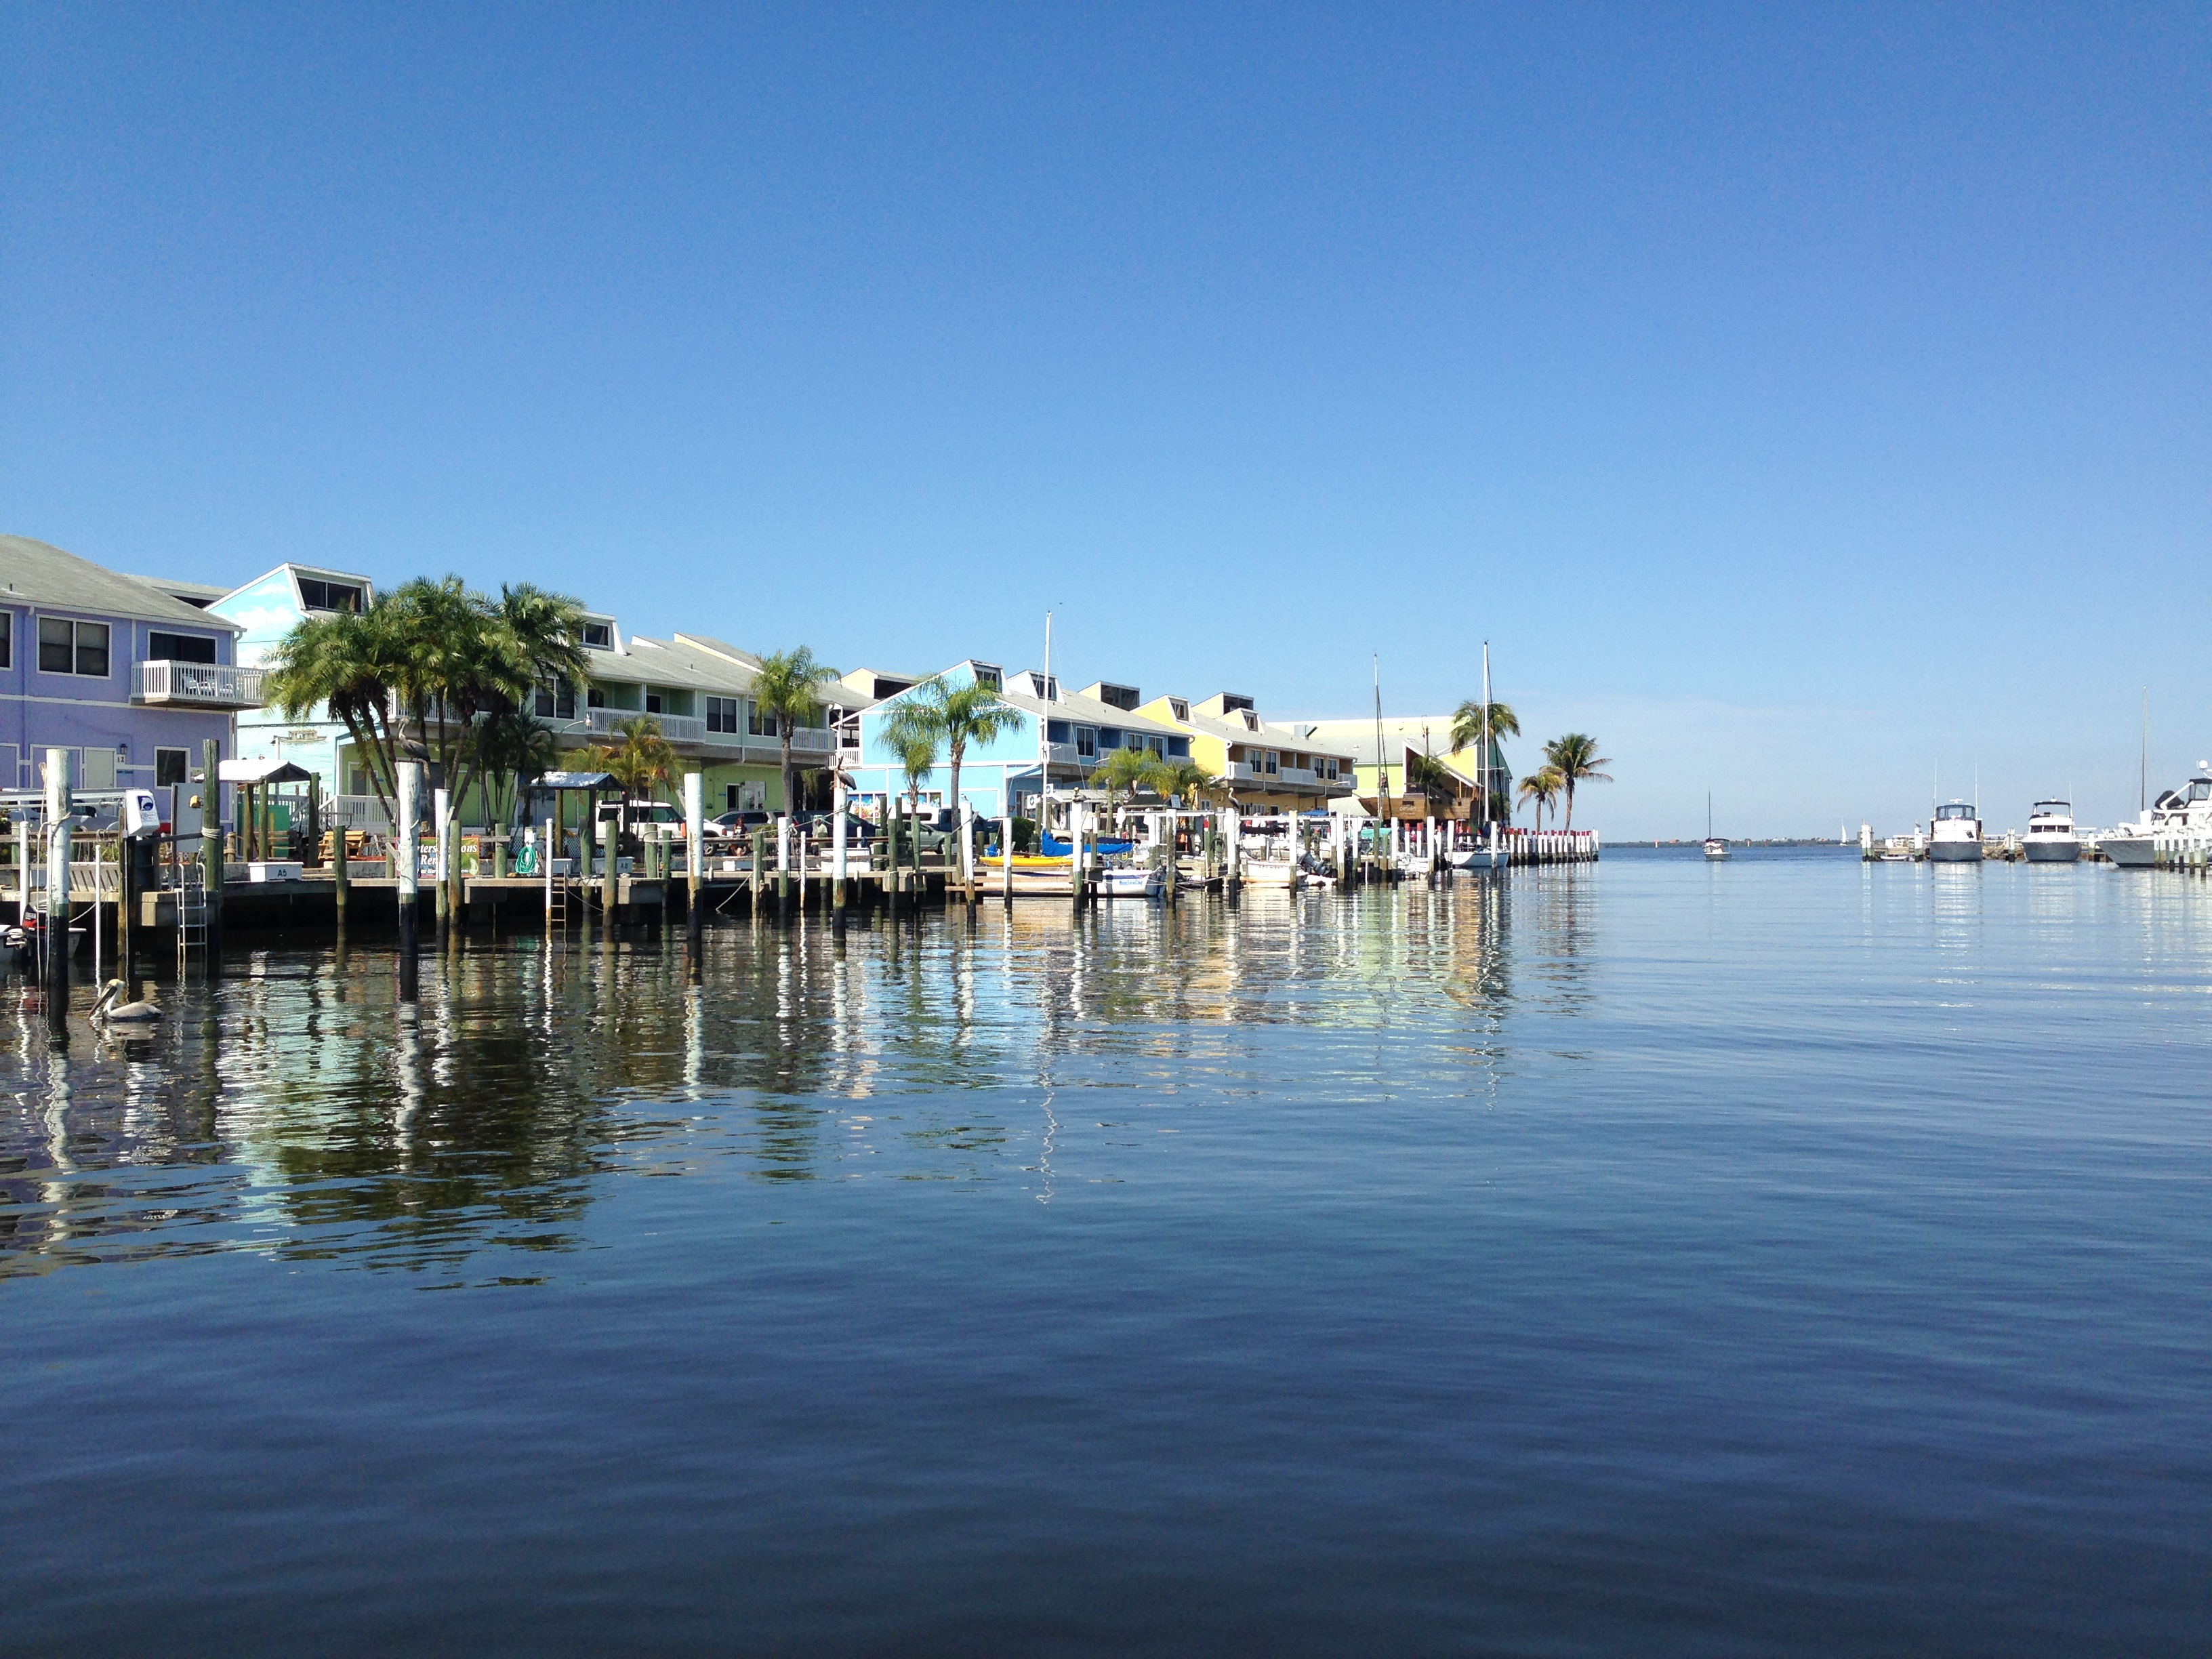 Fisherman's Village, Punta Gorda Florida